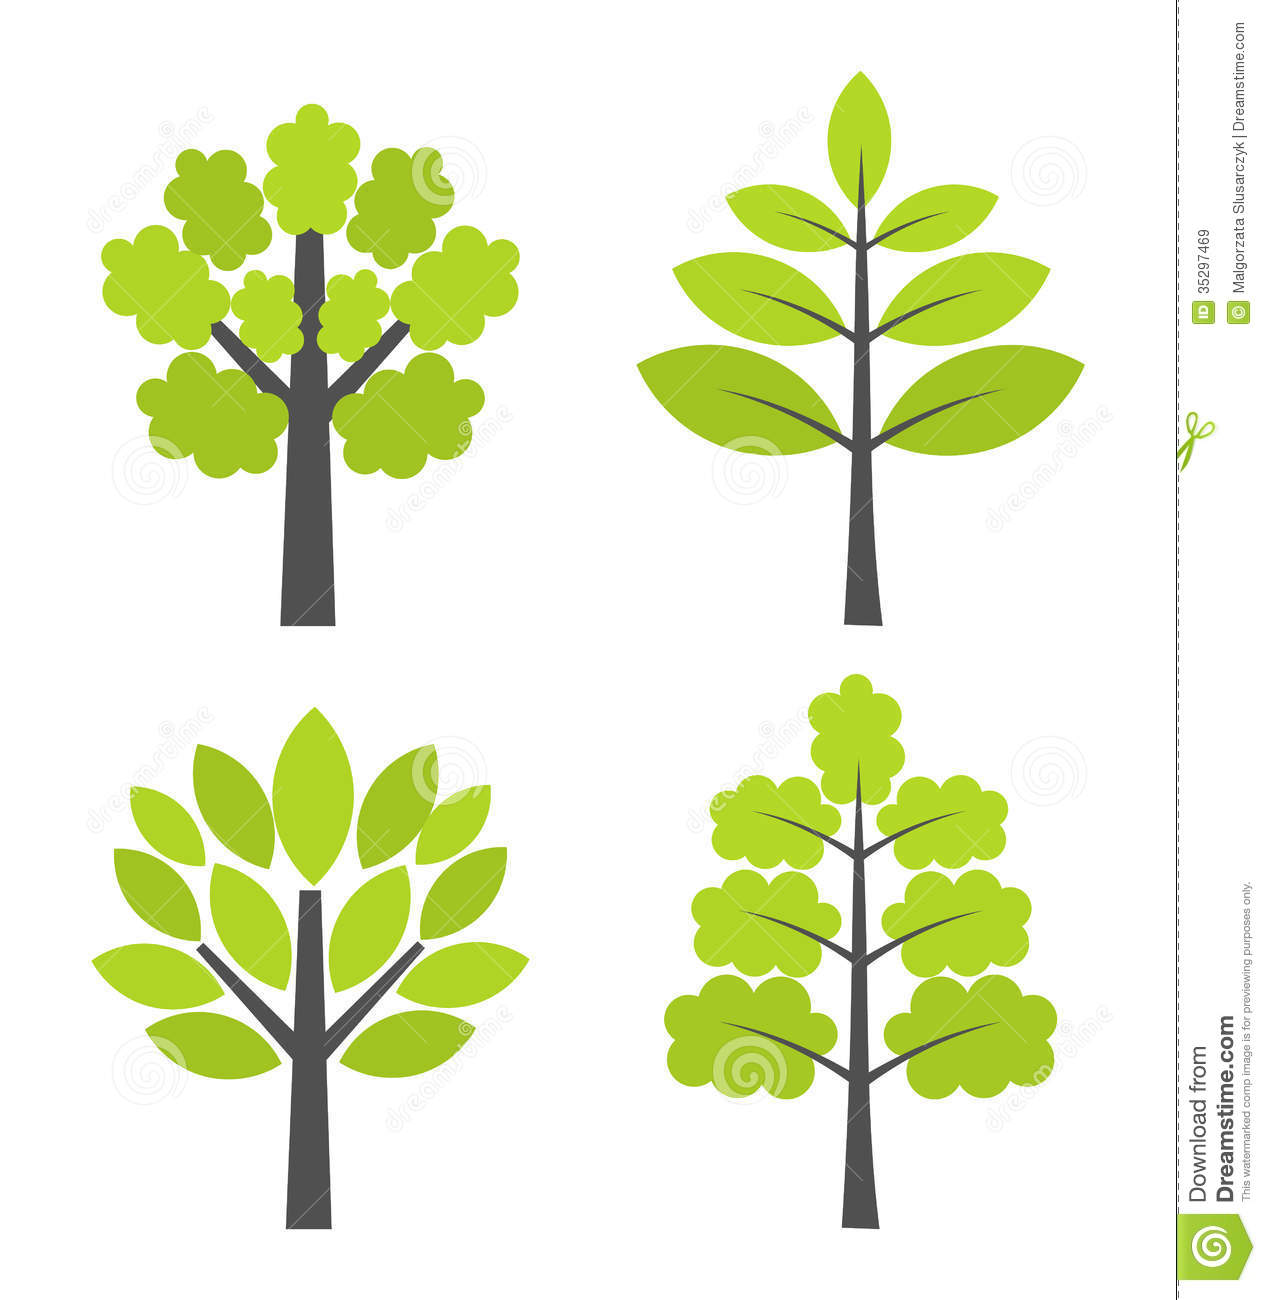 Trees Icons Royalty Free Stock Images   Image: 35297469 image #1535